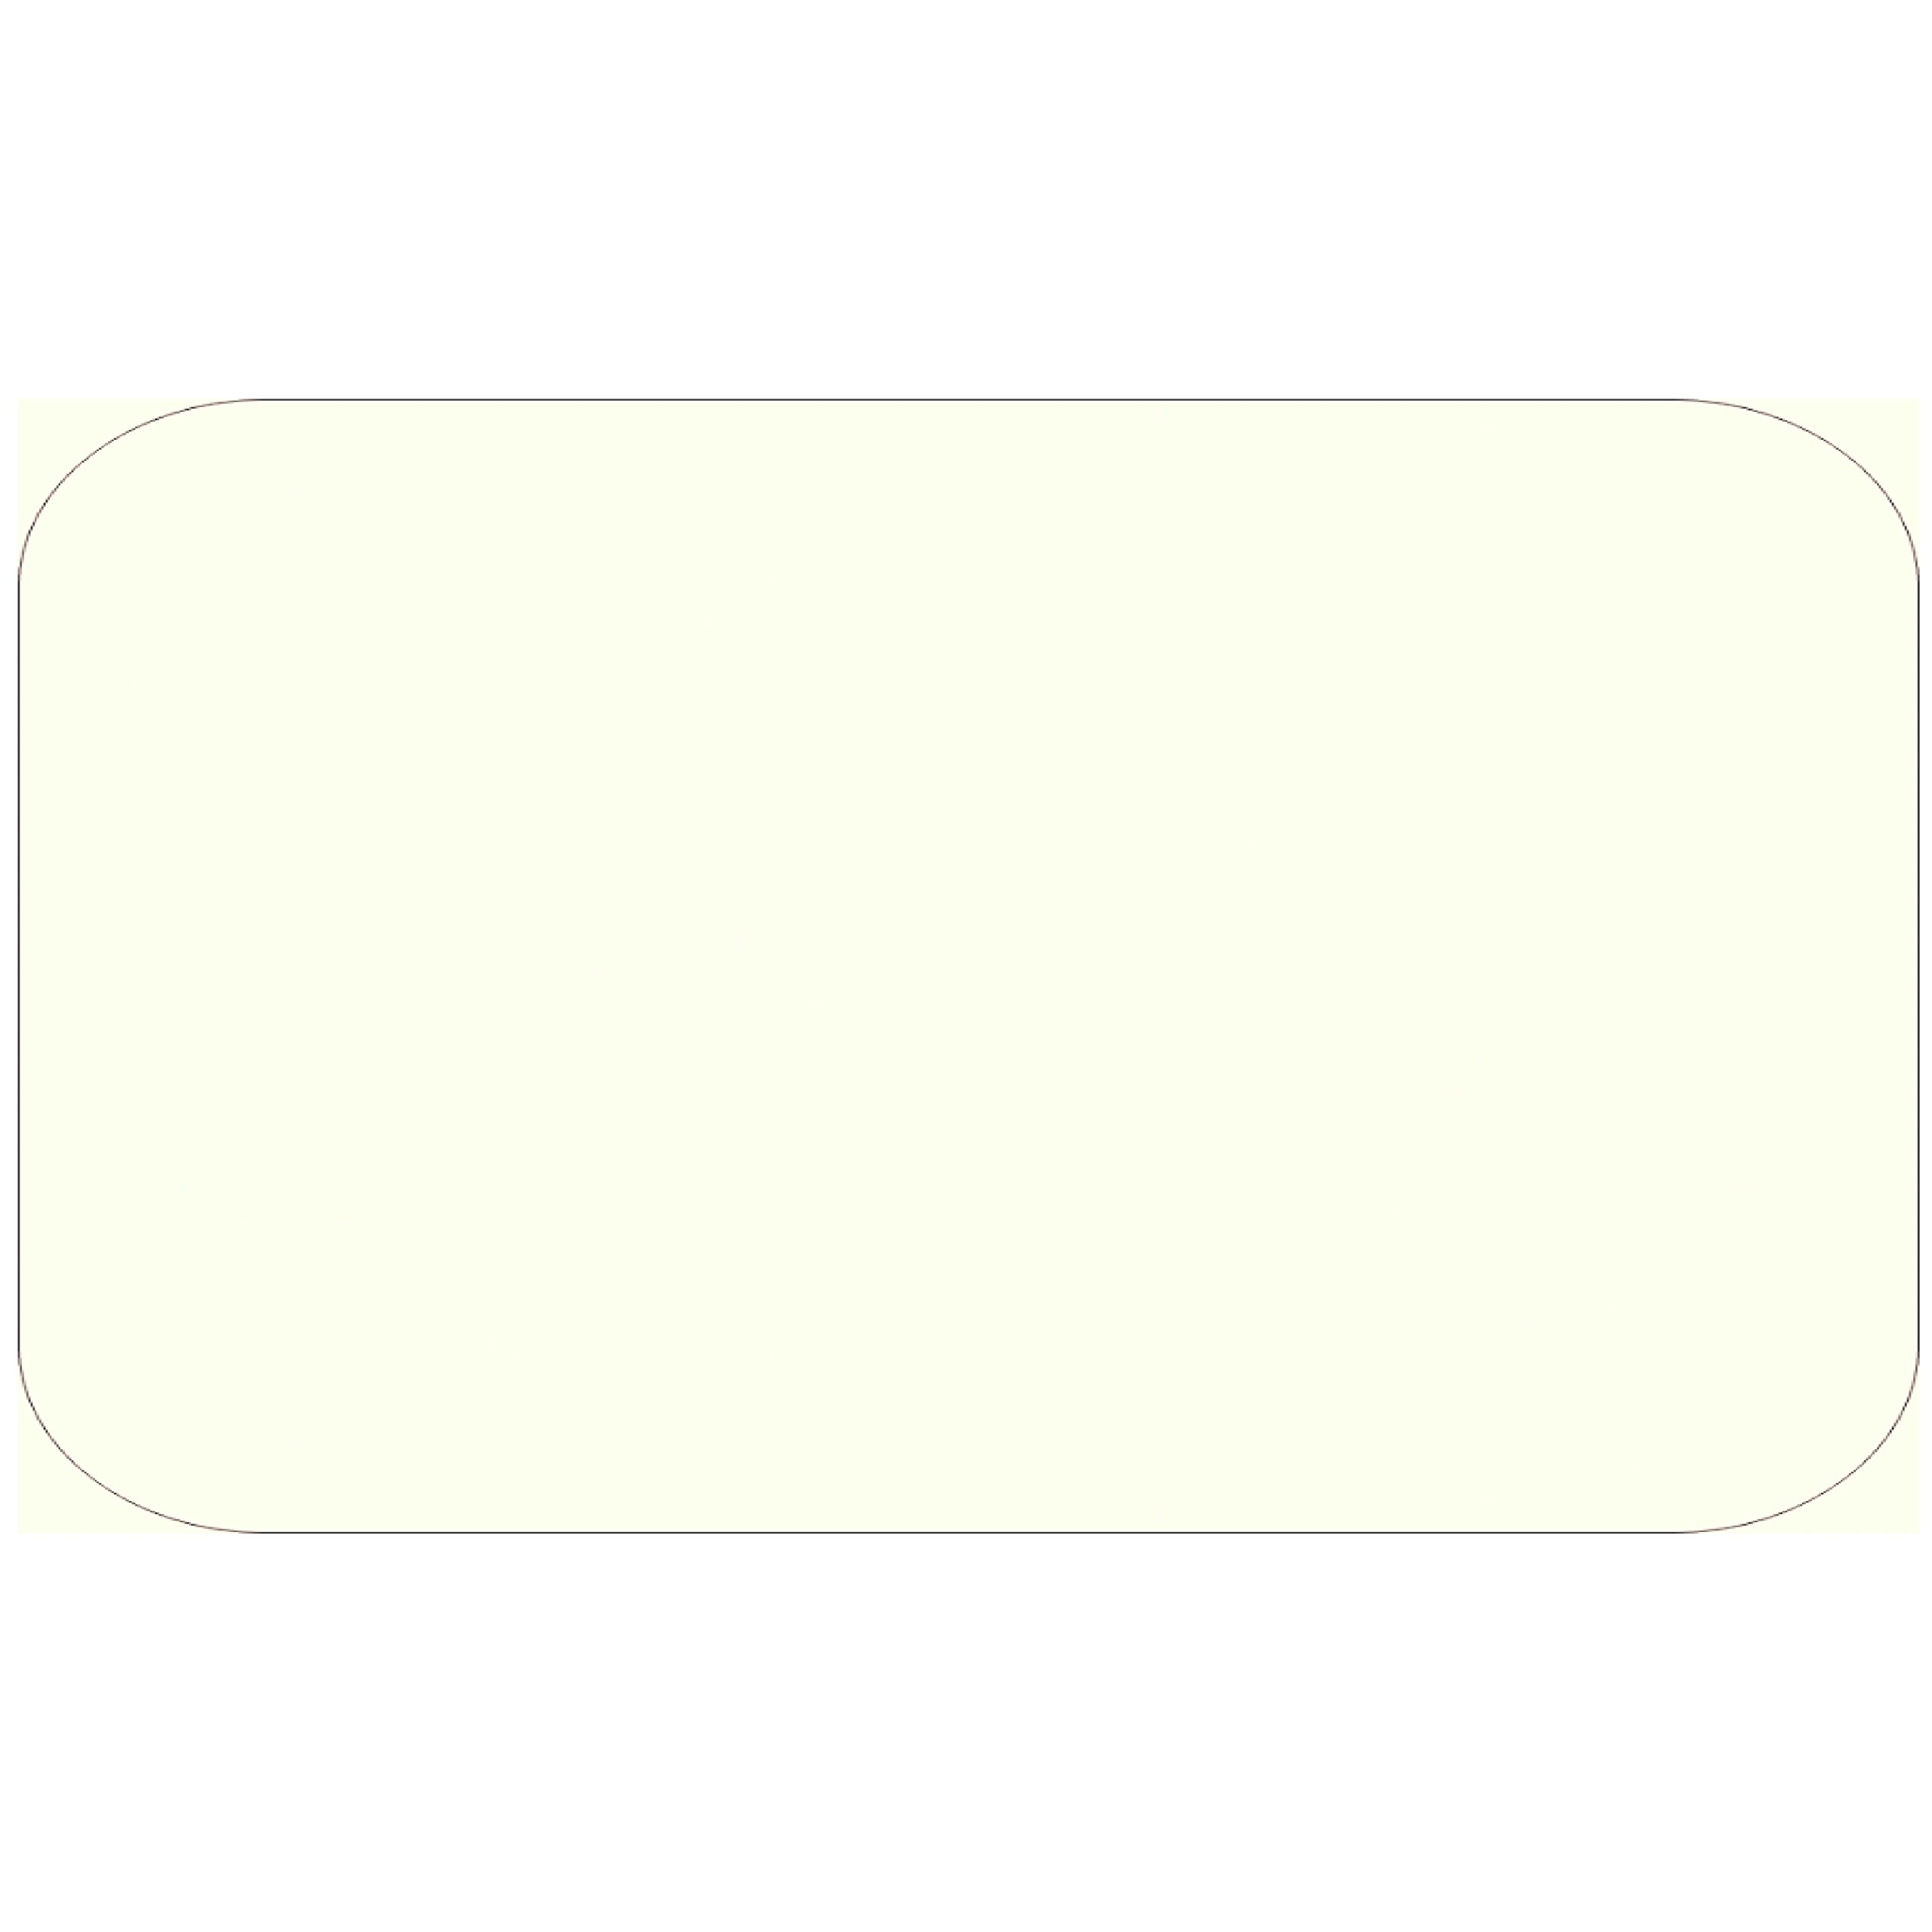 Colonial Cards: 150 White Parchment 3'' x 5'' Index Cards, Unruled with Rounded Corners